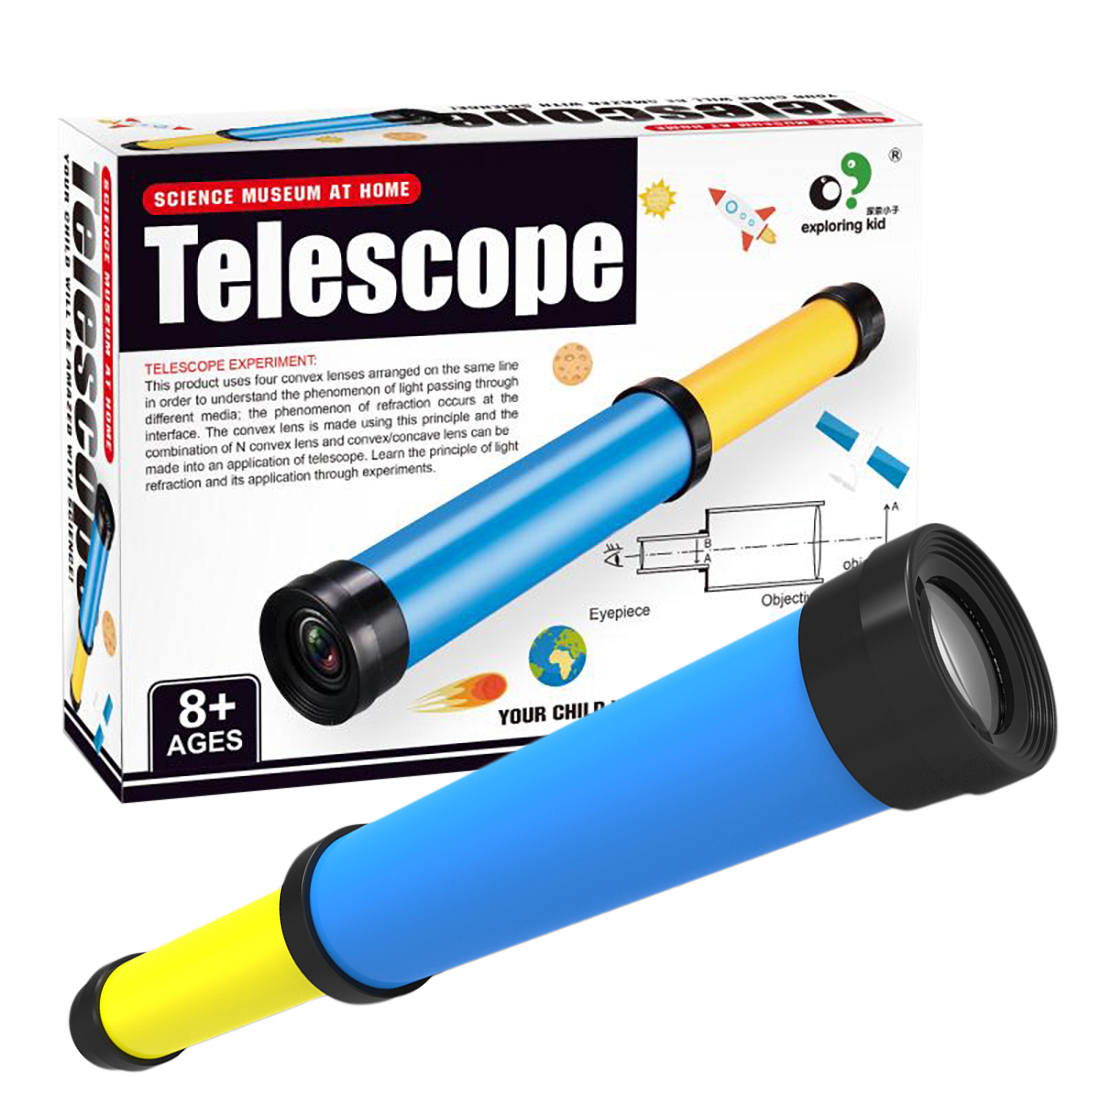 Rowsfire Telescope Experiment Science Kits Educational Toy for Kids Learning Education Science Toy